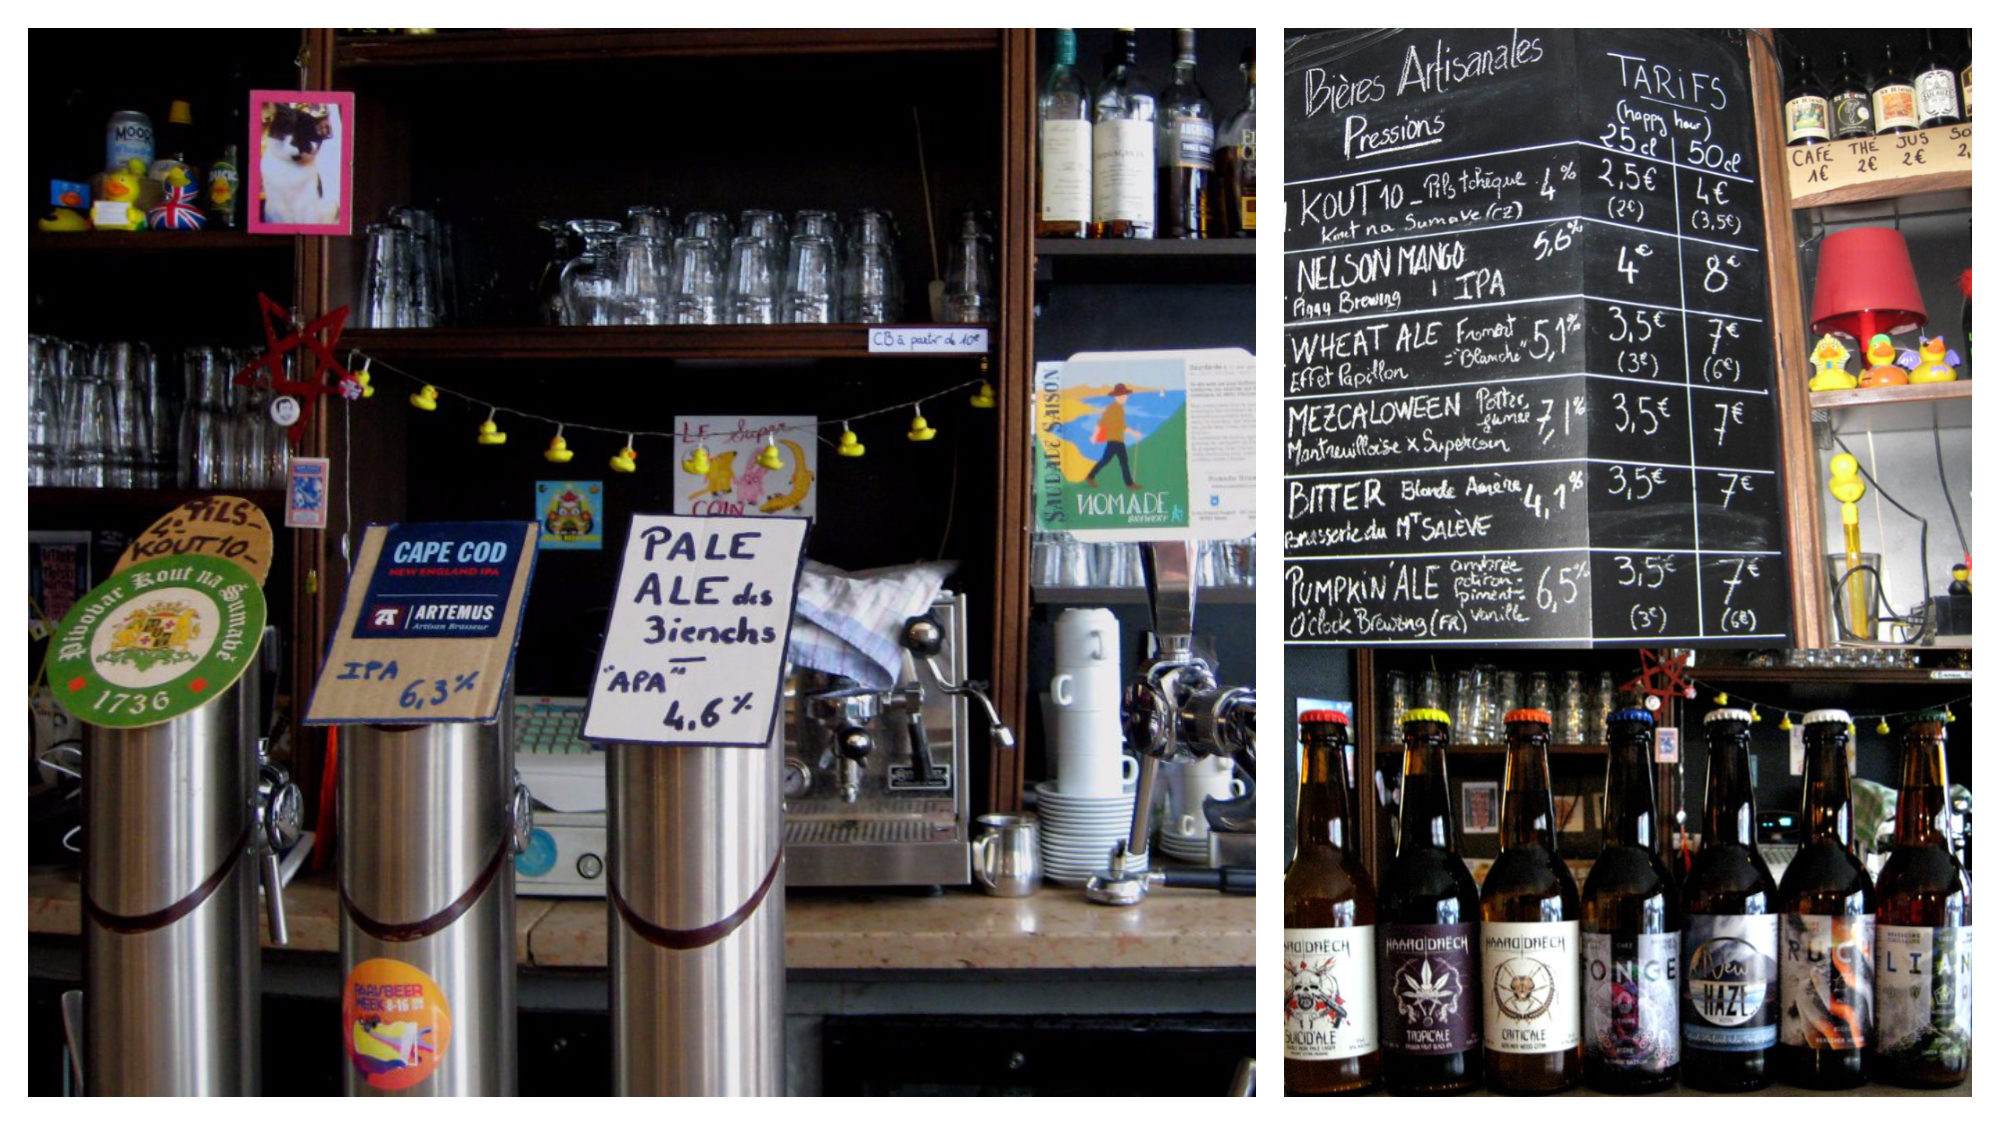 The counter with the beers on tap at craft beer shop and bar (left) and a selection of bottles (right) Supercoin in Paris.